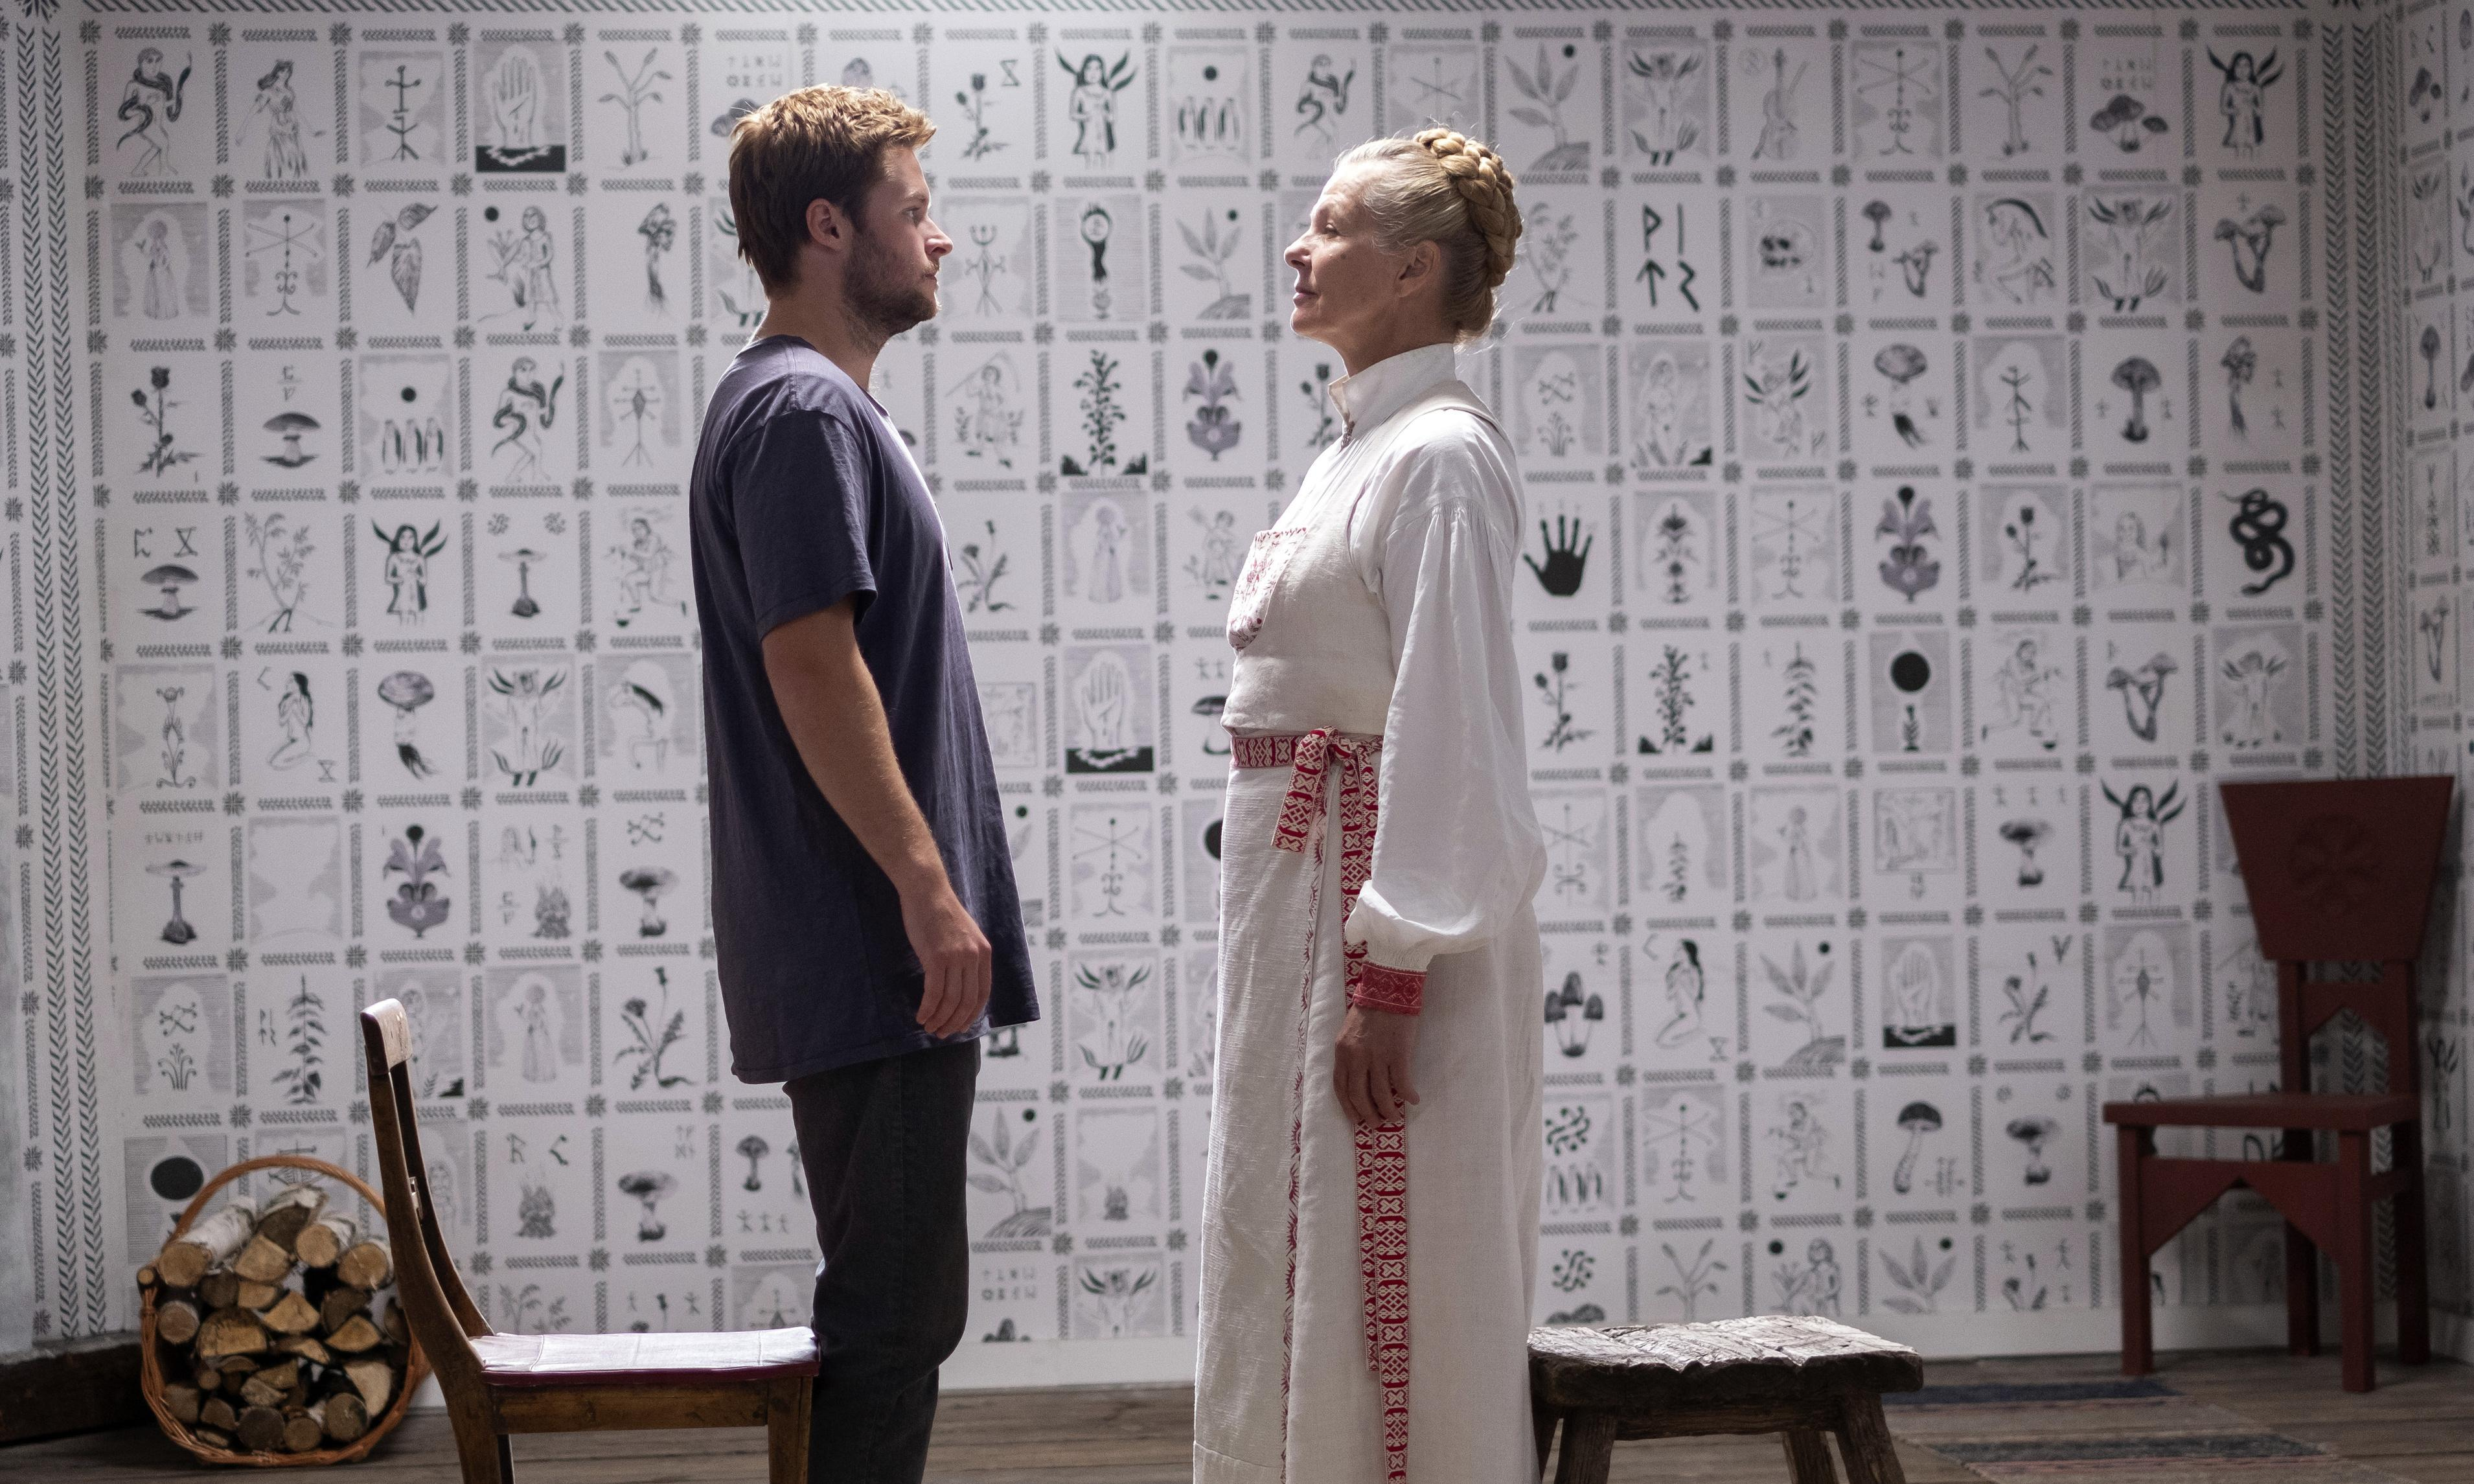 Myth-busting Midsommar: why today's shockers need to do more with folk horror